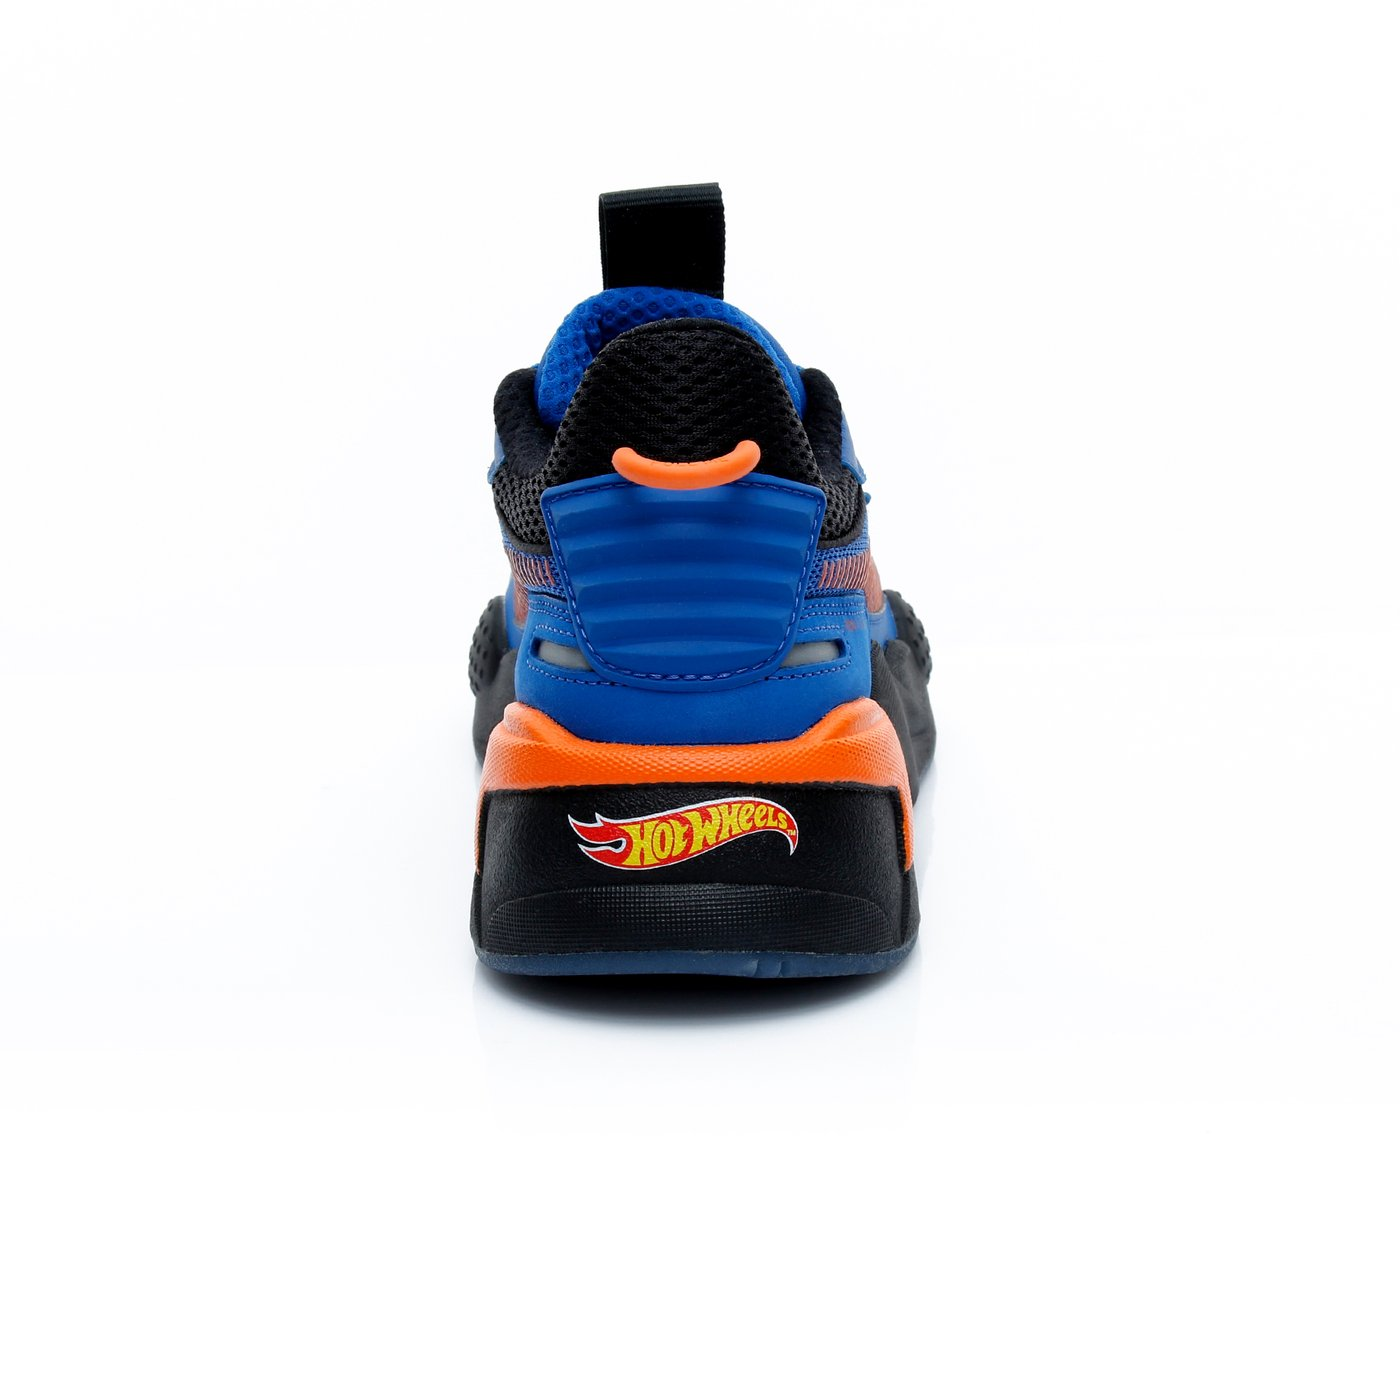 Puma X Hot Wheels Rs-X Toys Bone Spor Ayakkabı